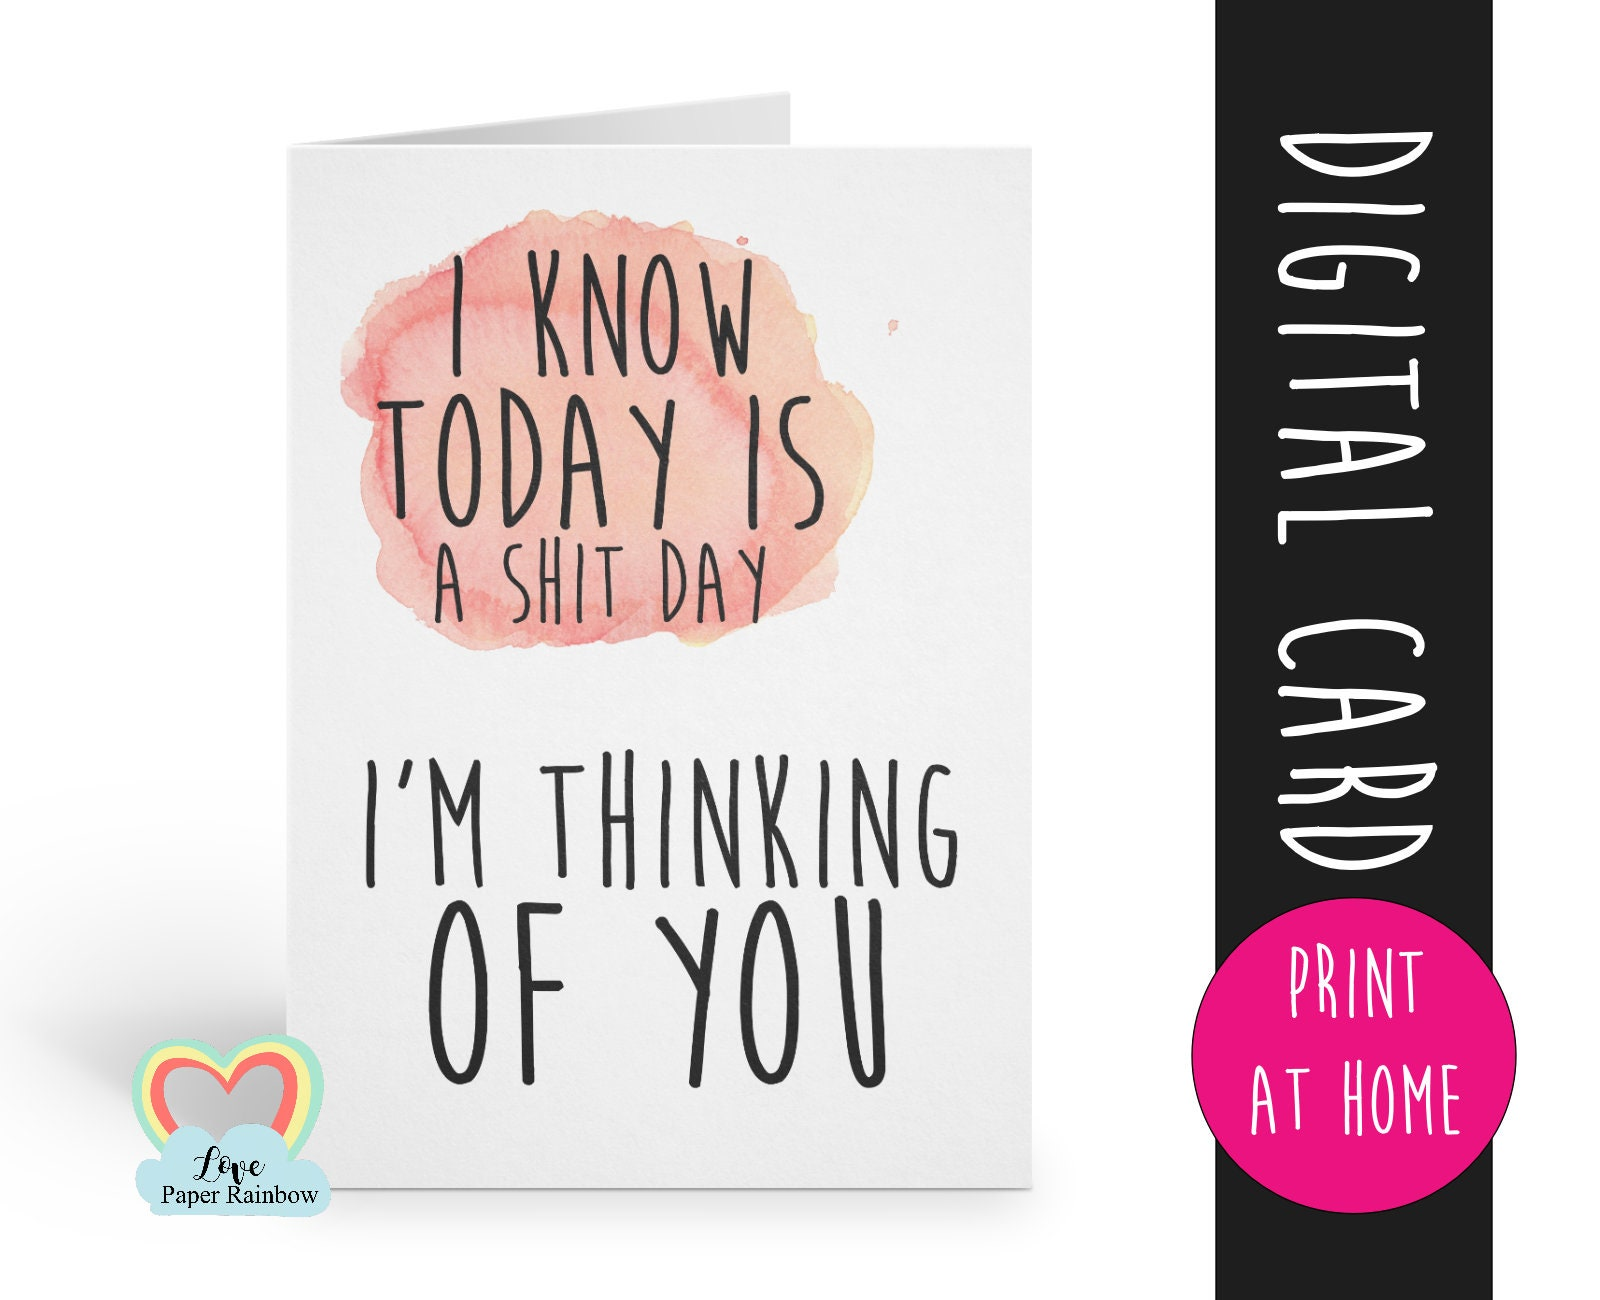 picture relating to Printable Thinking of You Cards referred to as PRINTABLE playing cards, questioning of yourself card printable, wanting to know of